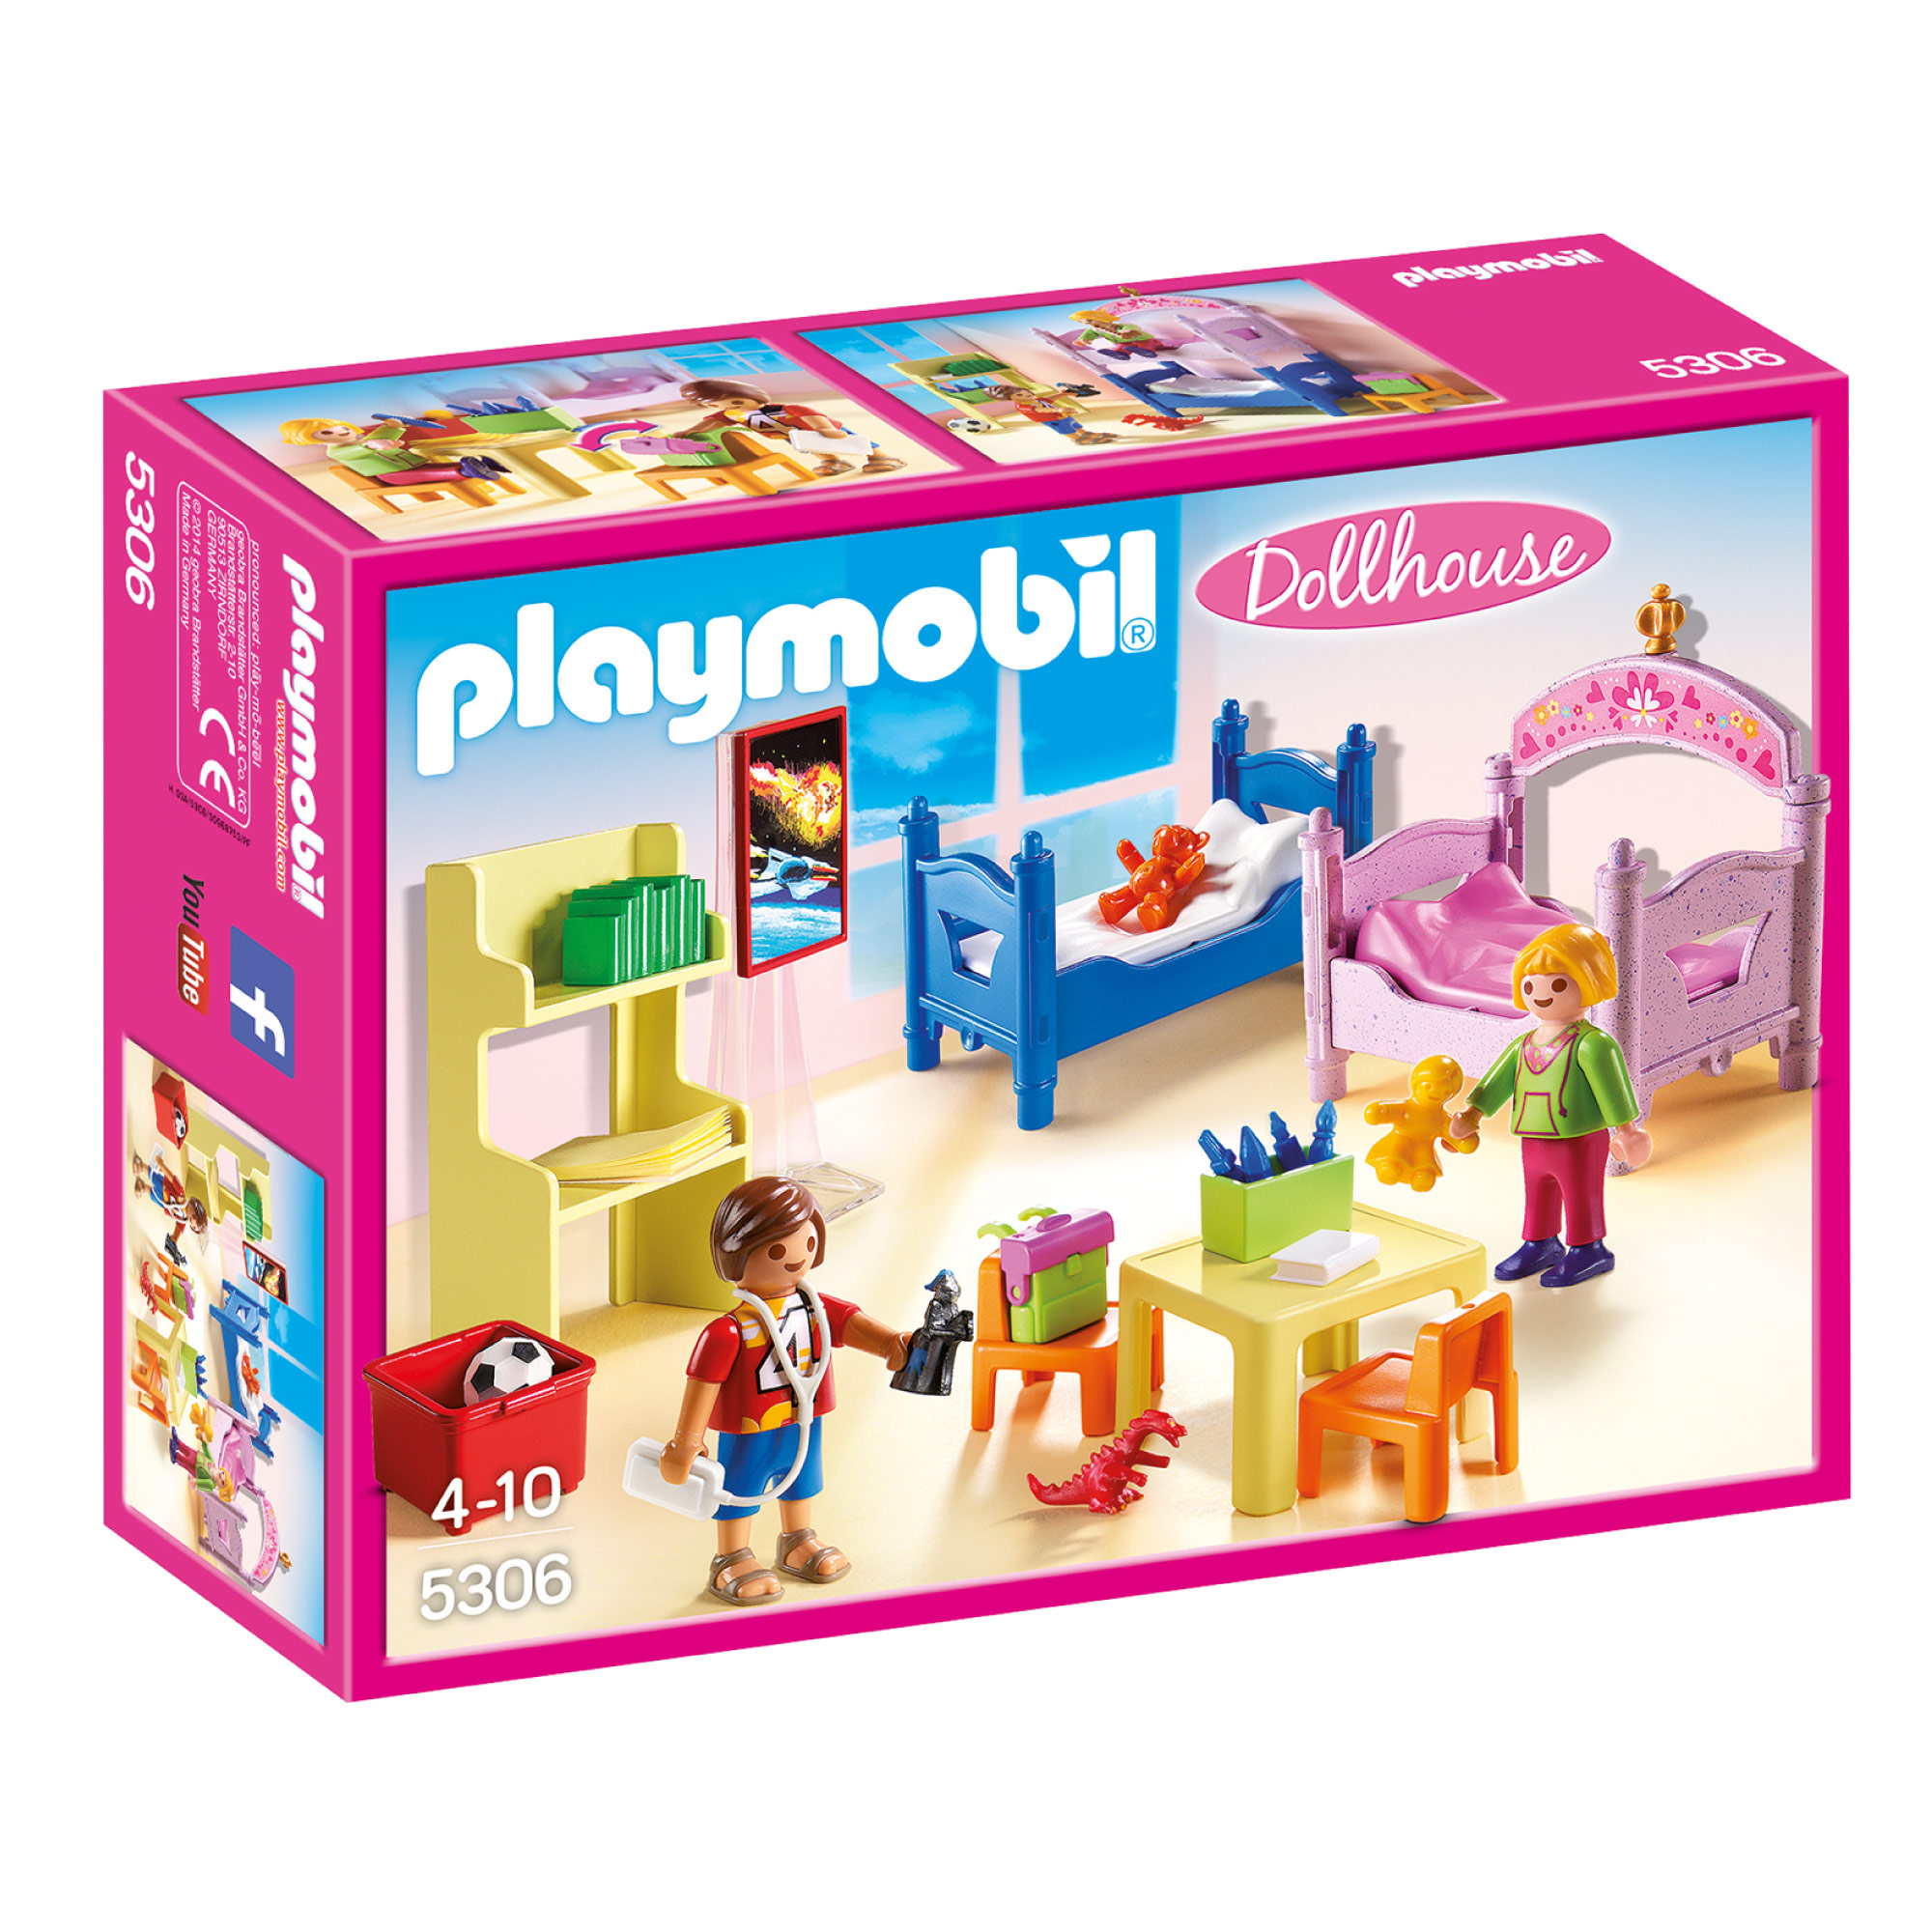 Playmobil Children's Room 5306